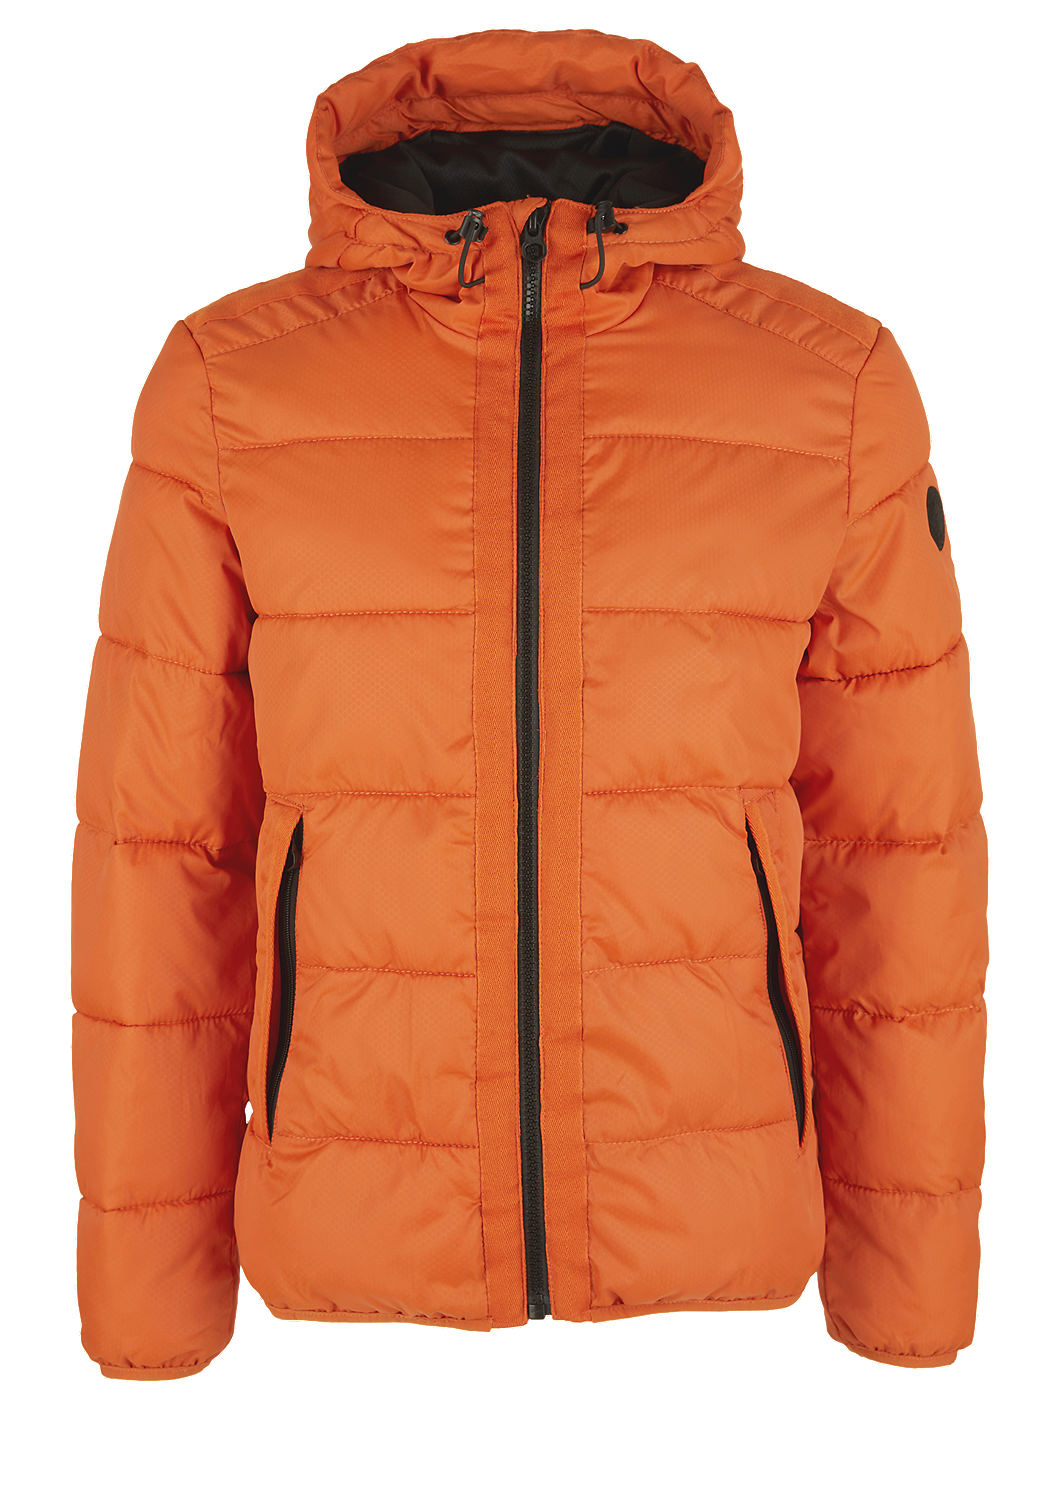 run shoes size 7 huge selection of Buy Quilted jacket with a honeycomb texture | s.Oliver shop